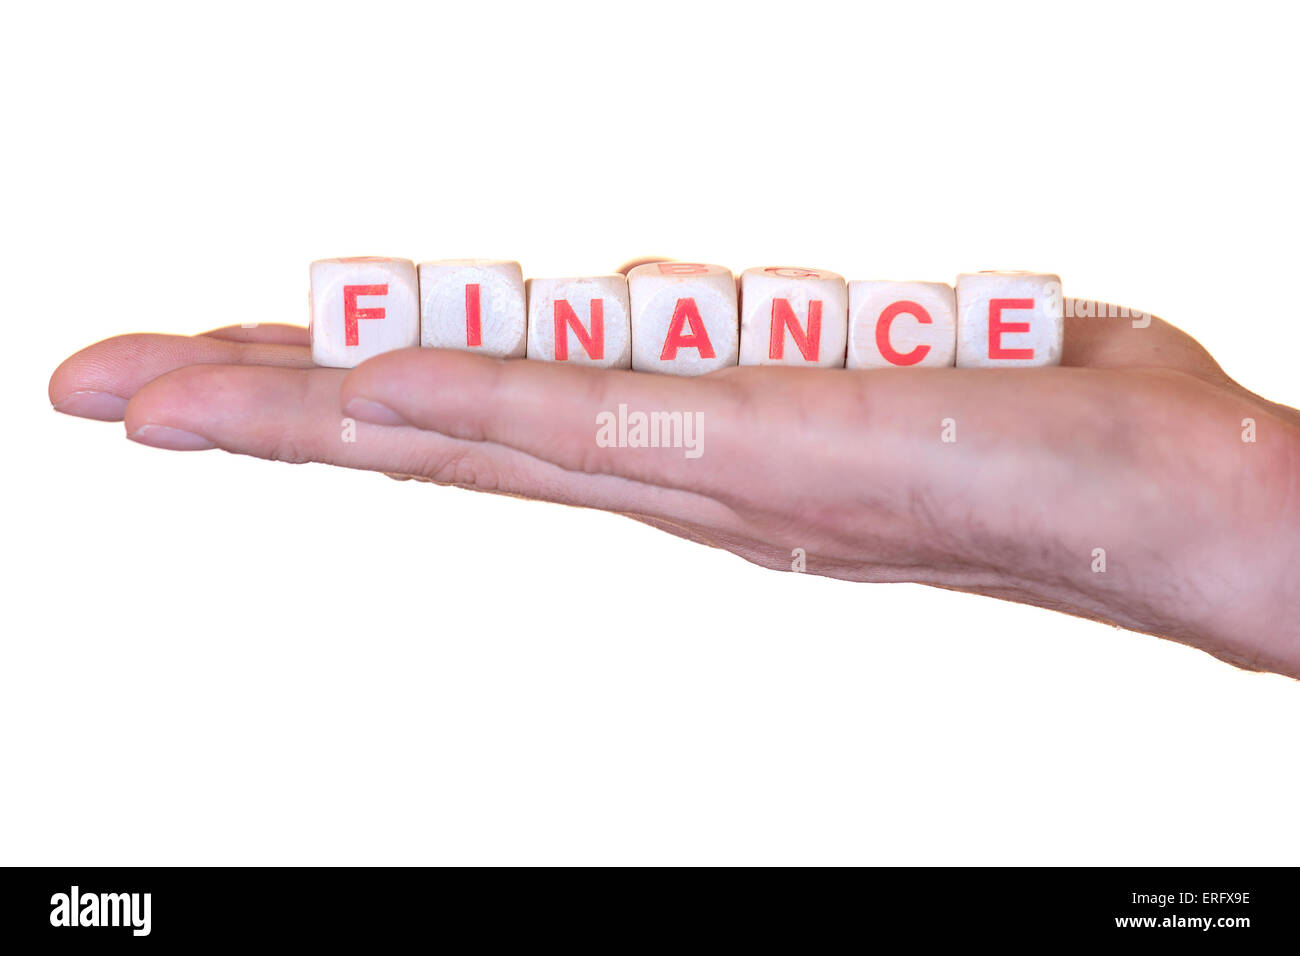 The word finance written with wooden dice on the he palm of the hand. Isolated on white background - Stock Image